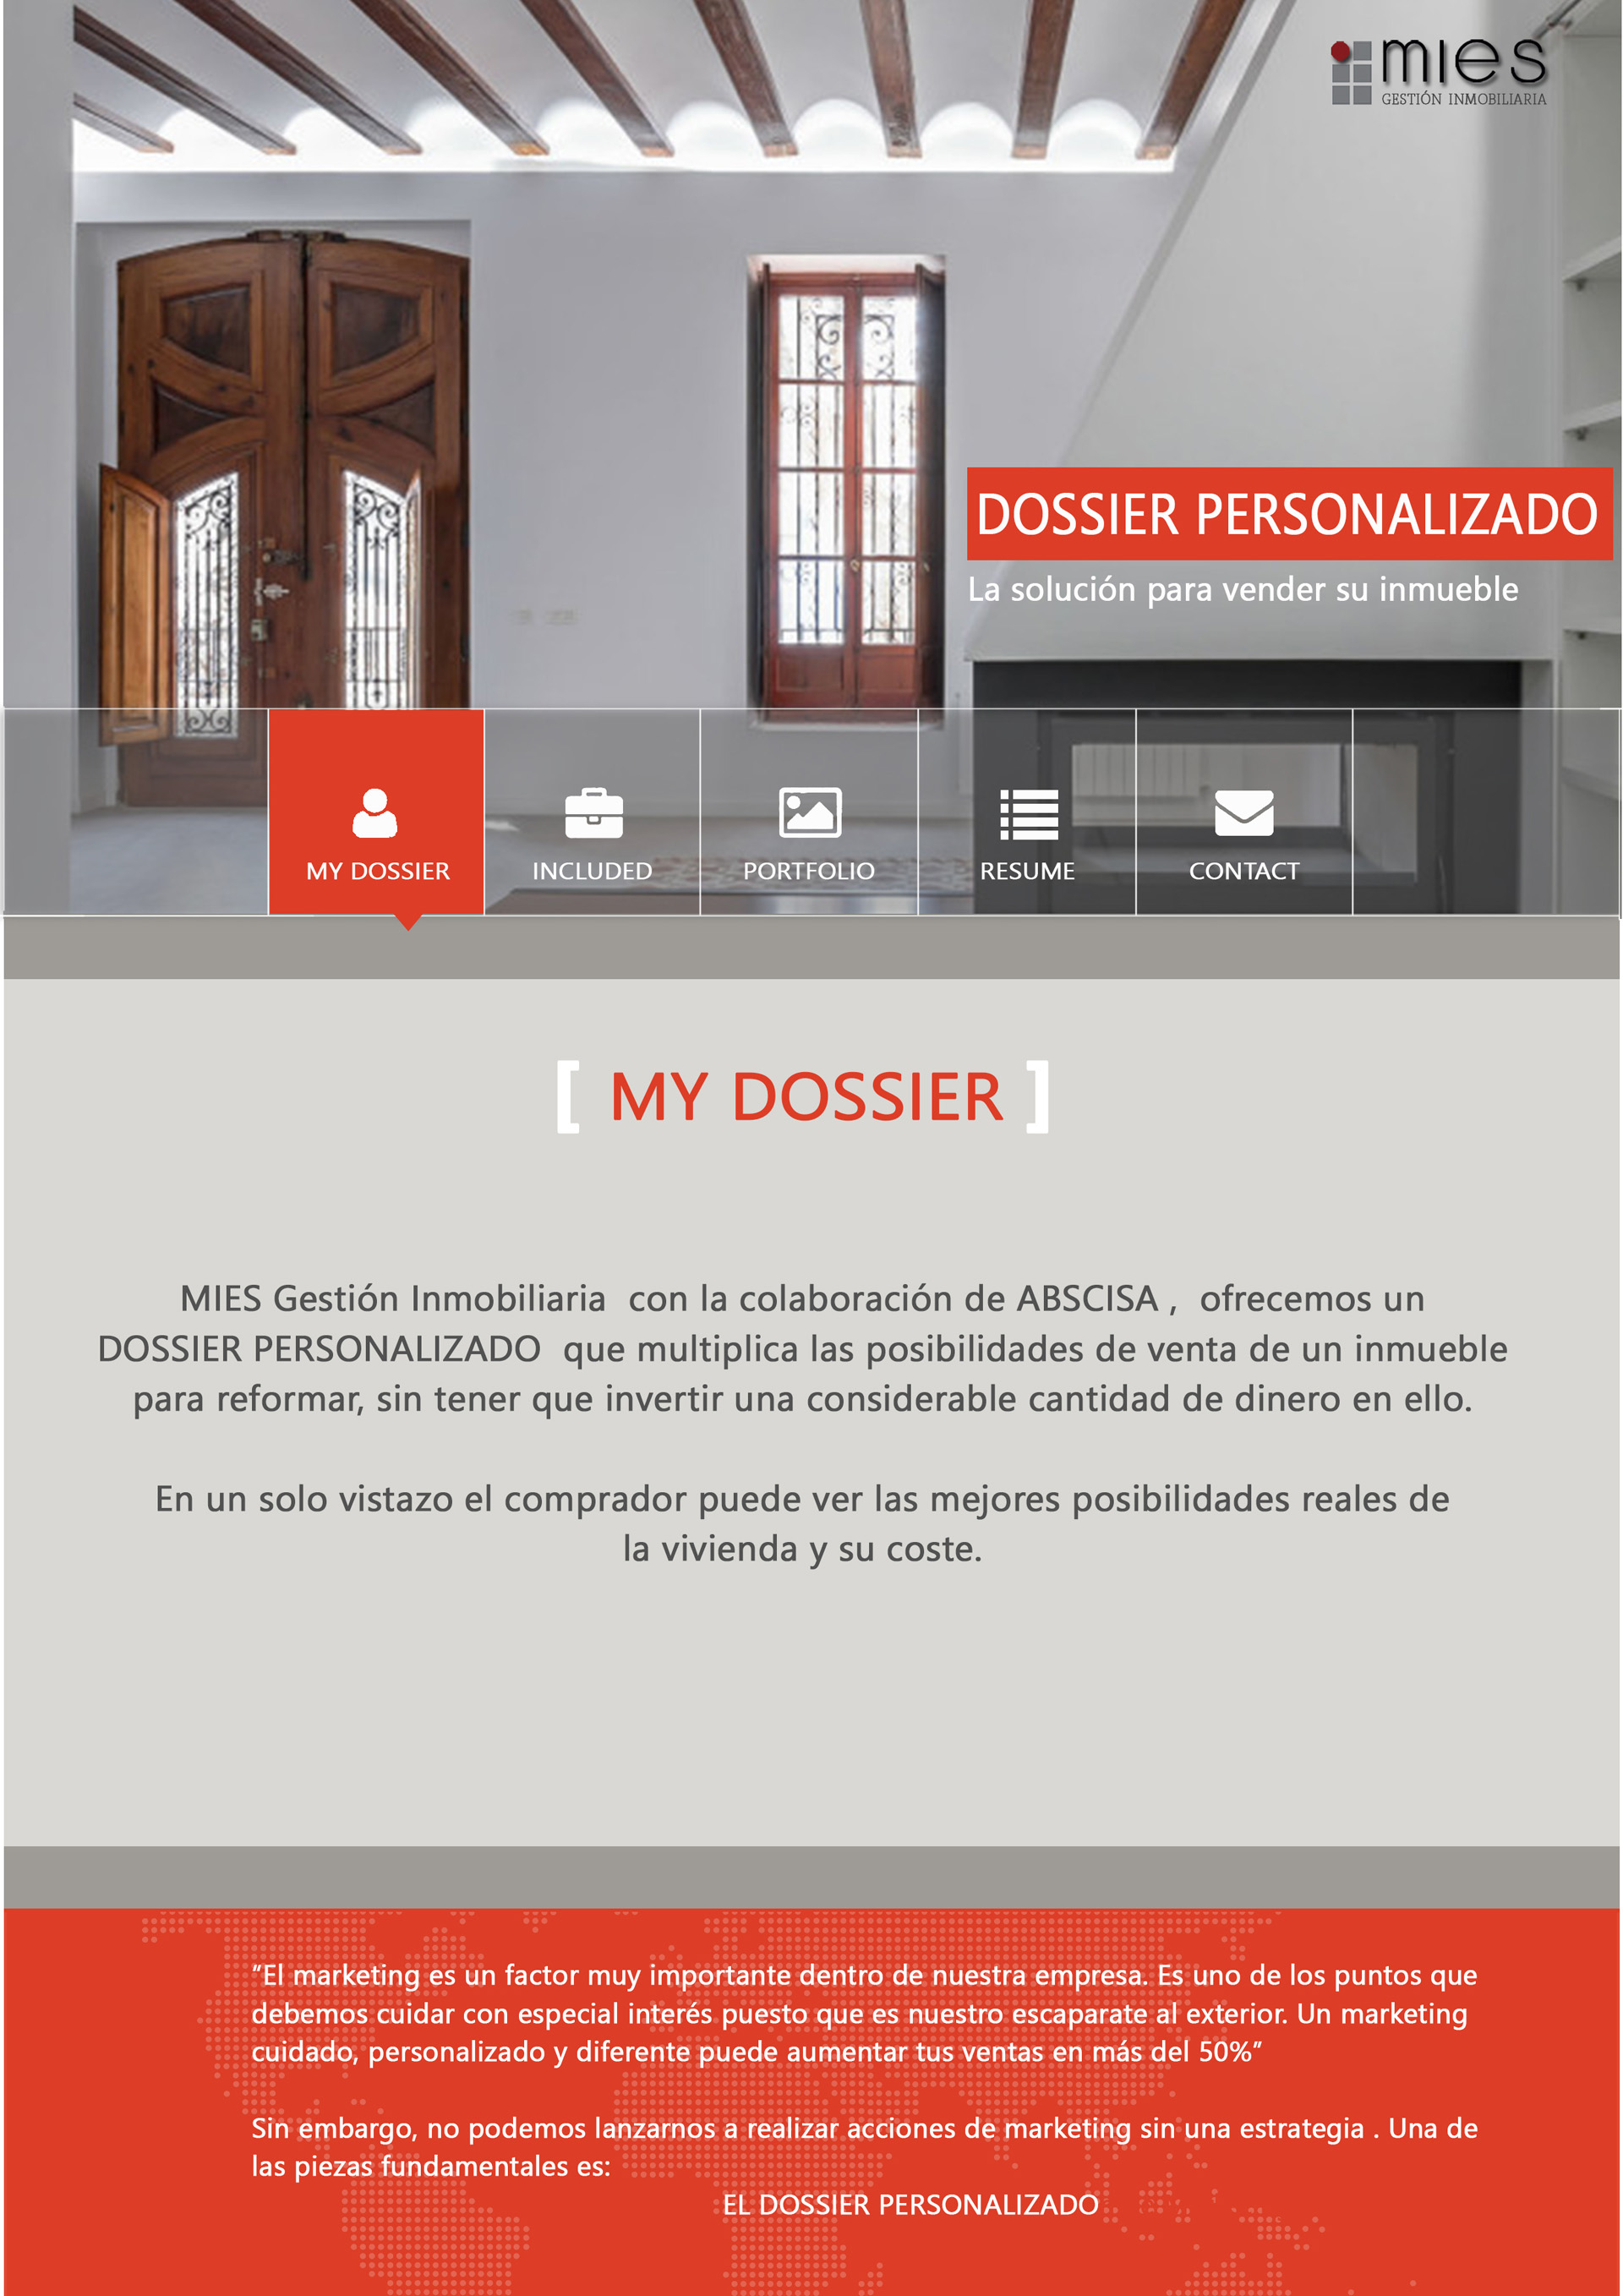 Mies inmobiliaria - My Dossier